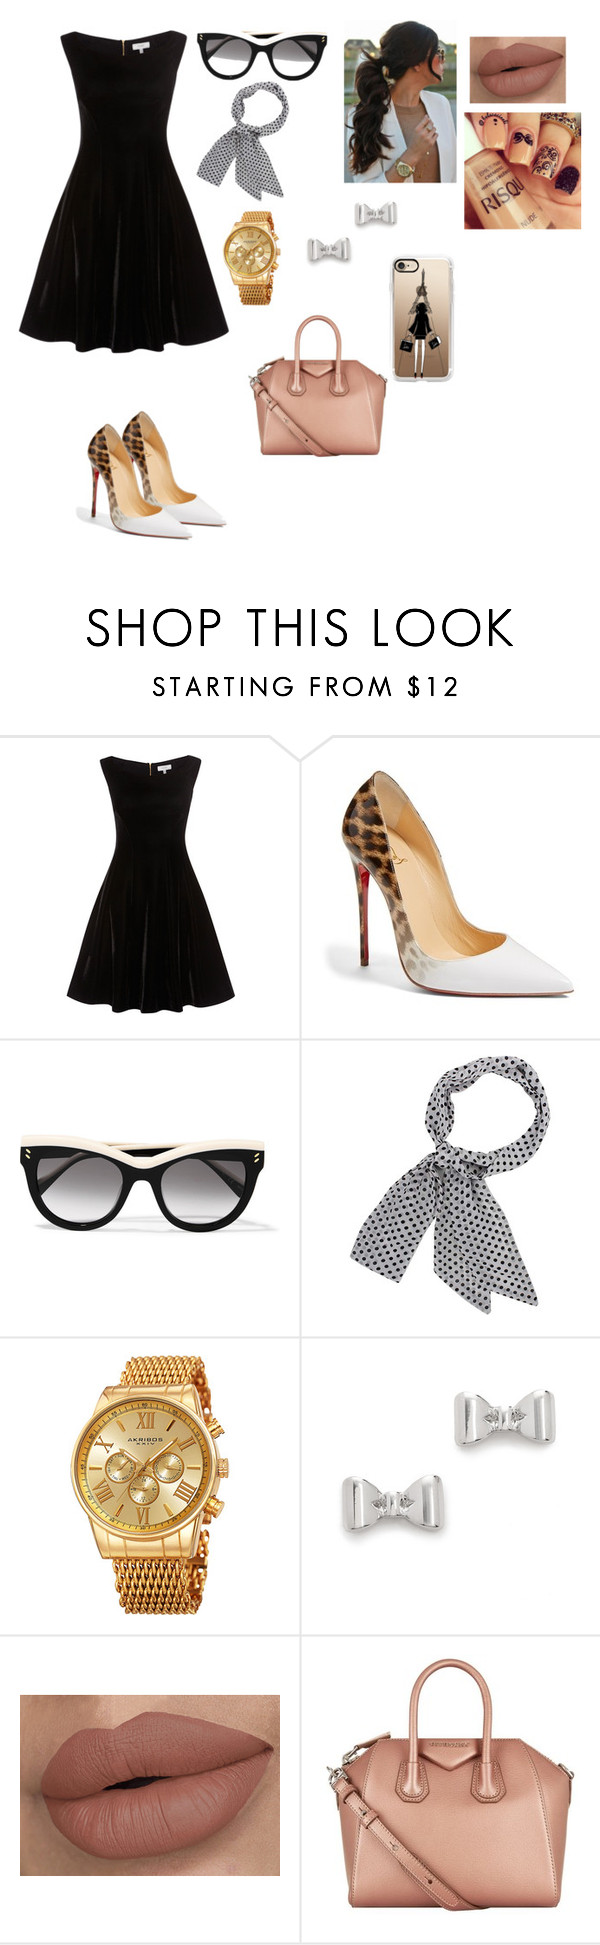 """Black Dress & Louboutins"" by yogurl-riyaa ❤ liked on Polyvore featuring Christian Louboutin, STELLA McCARTNEY, Akribos XXIV, Marc by Marc Jacobs, Givenchy and Casetify"